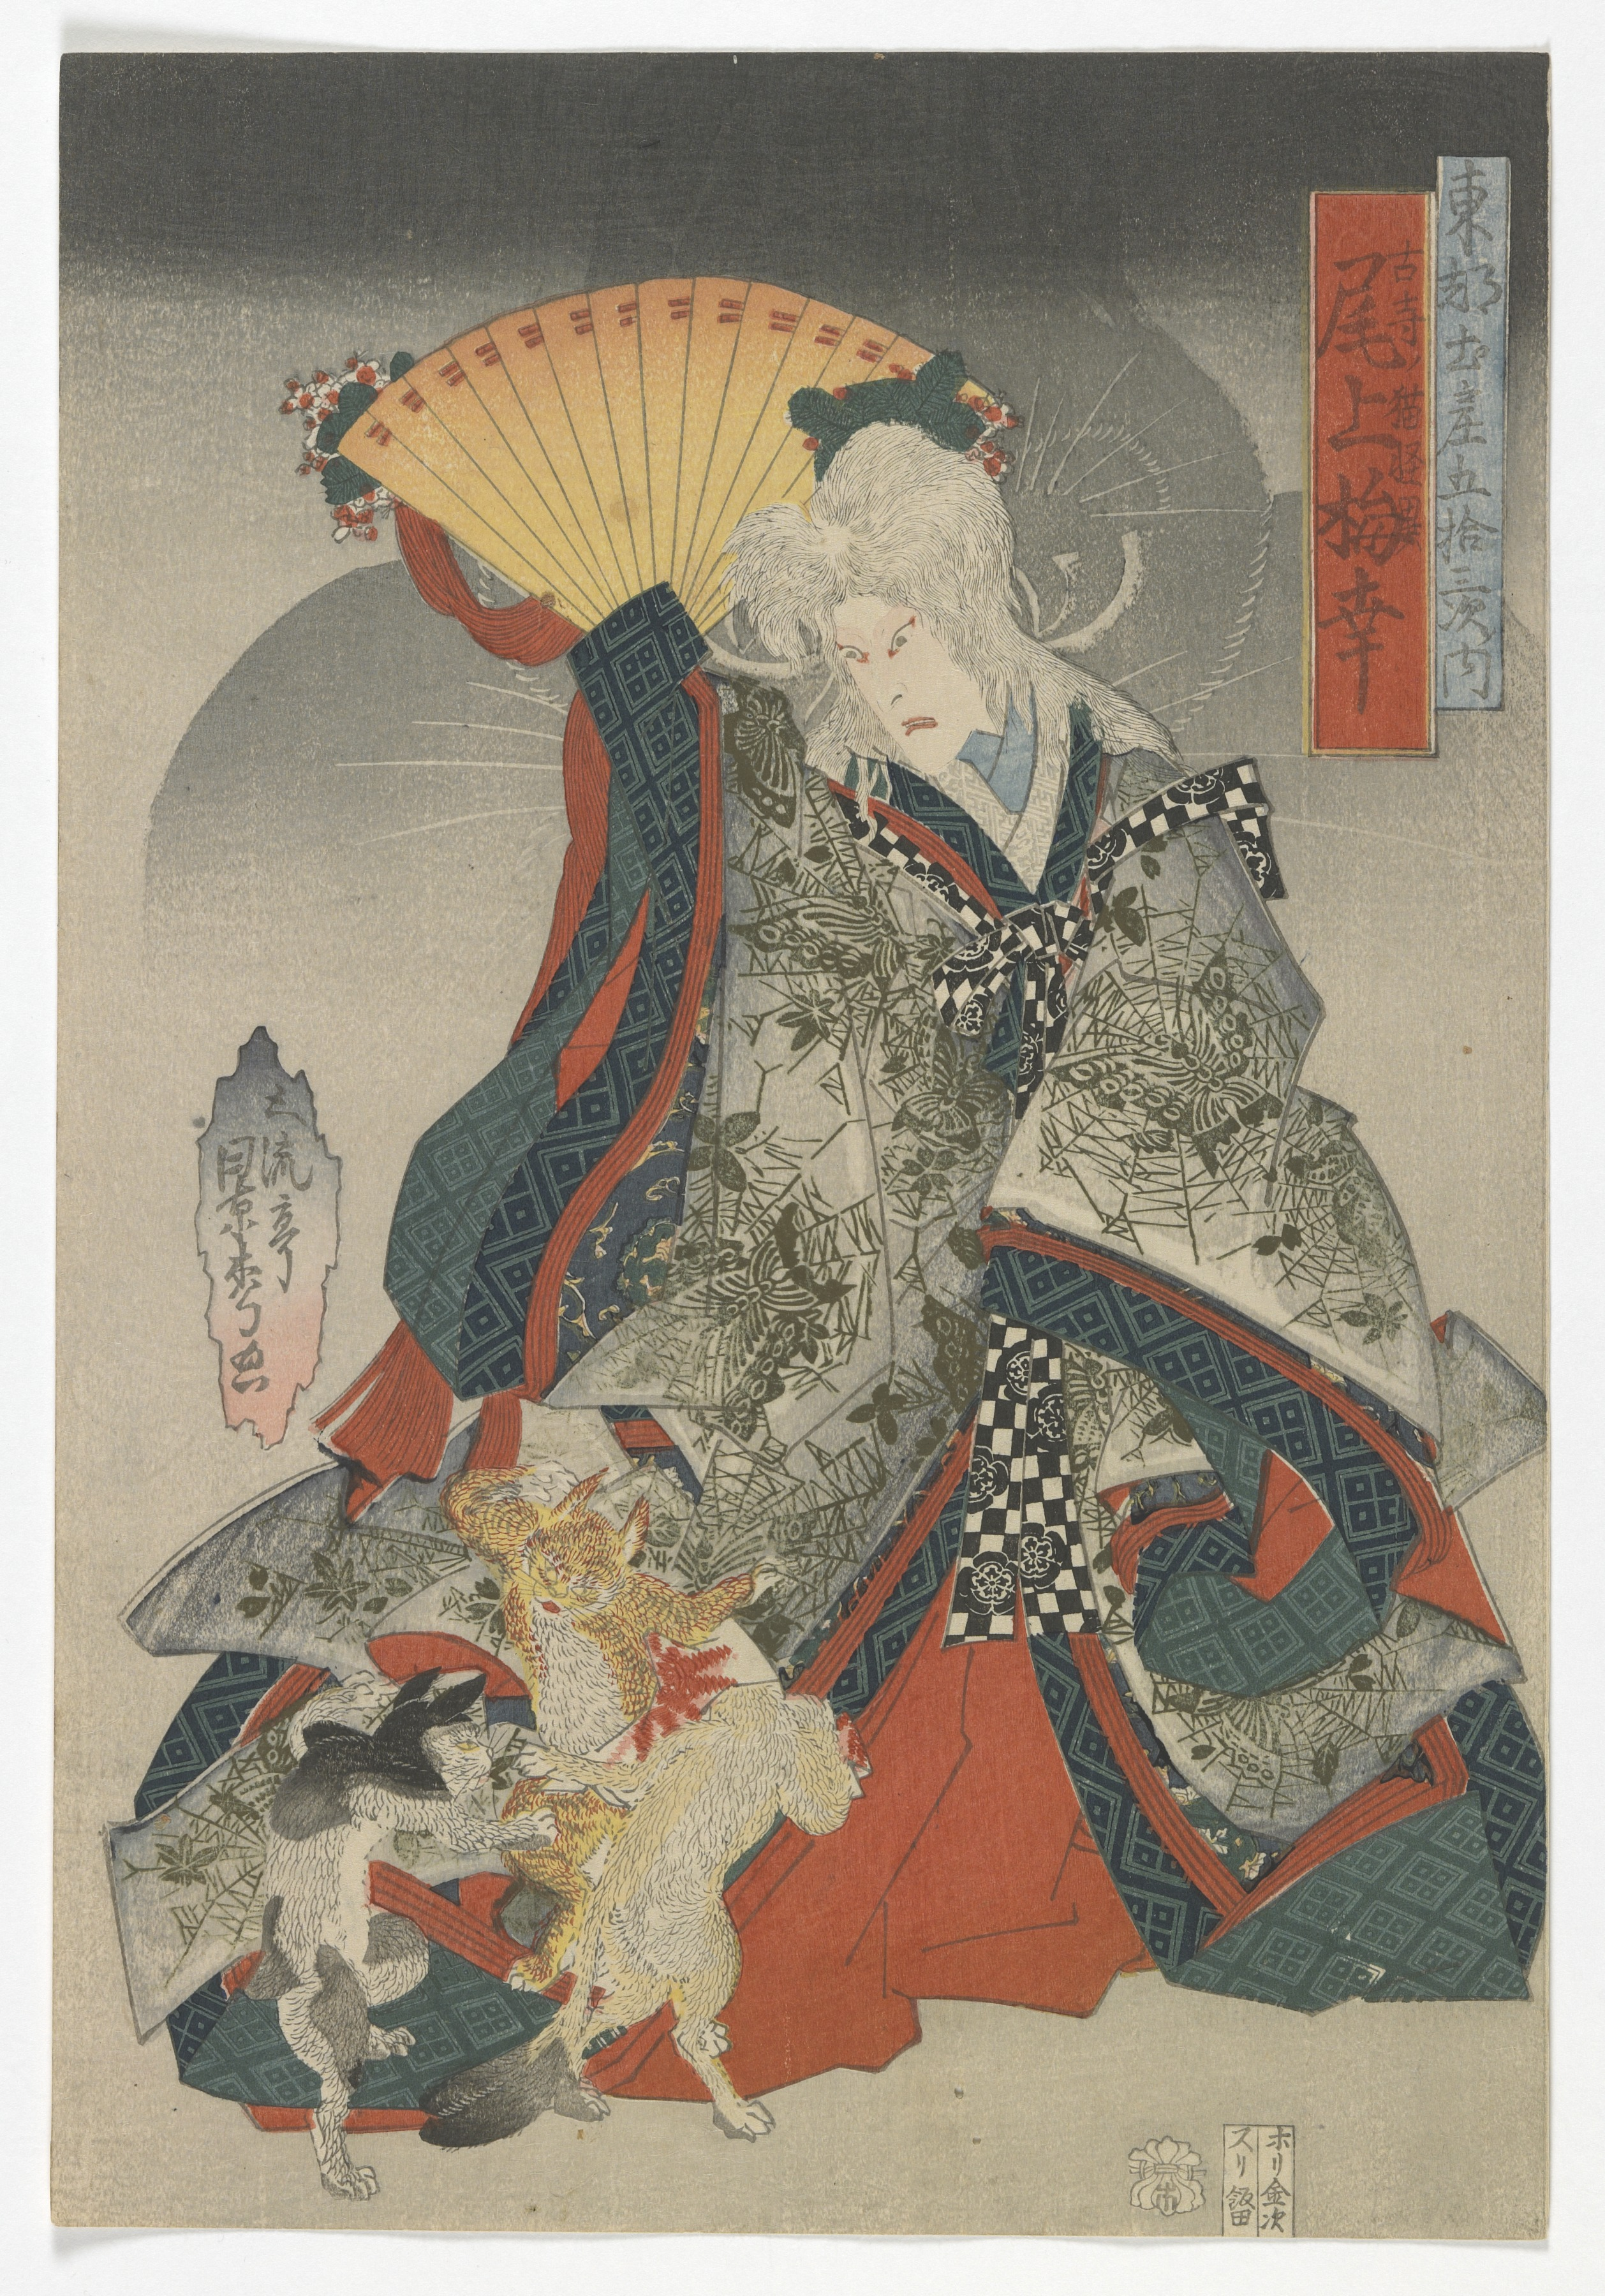 Souvenirs of the Eastern capital on the fifty-three stations of the Tokaido: the actor Onoe Baiko III as the cat spirit of old temple (Painting).